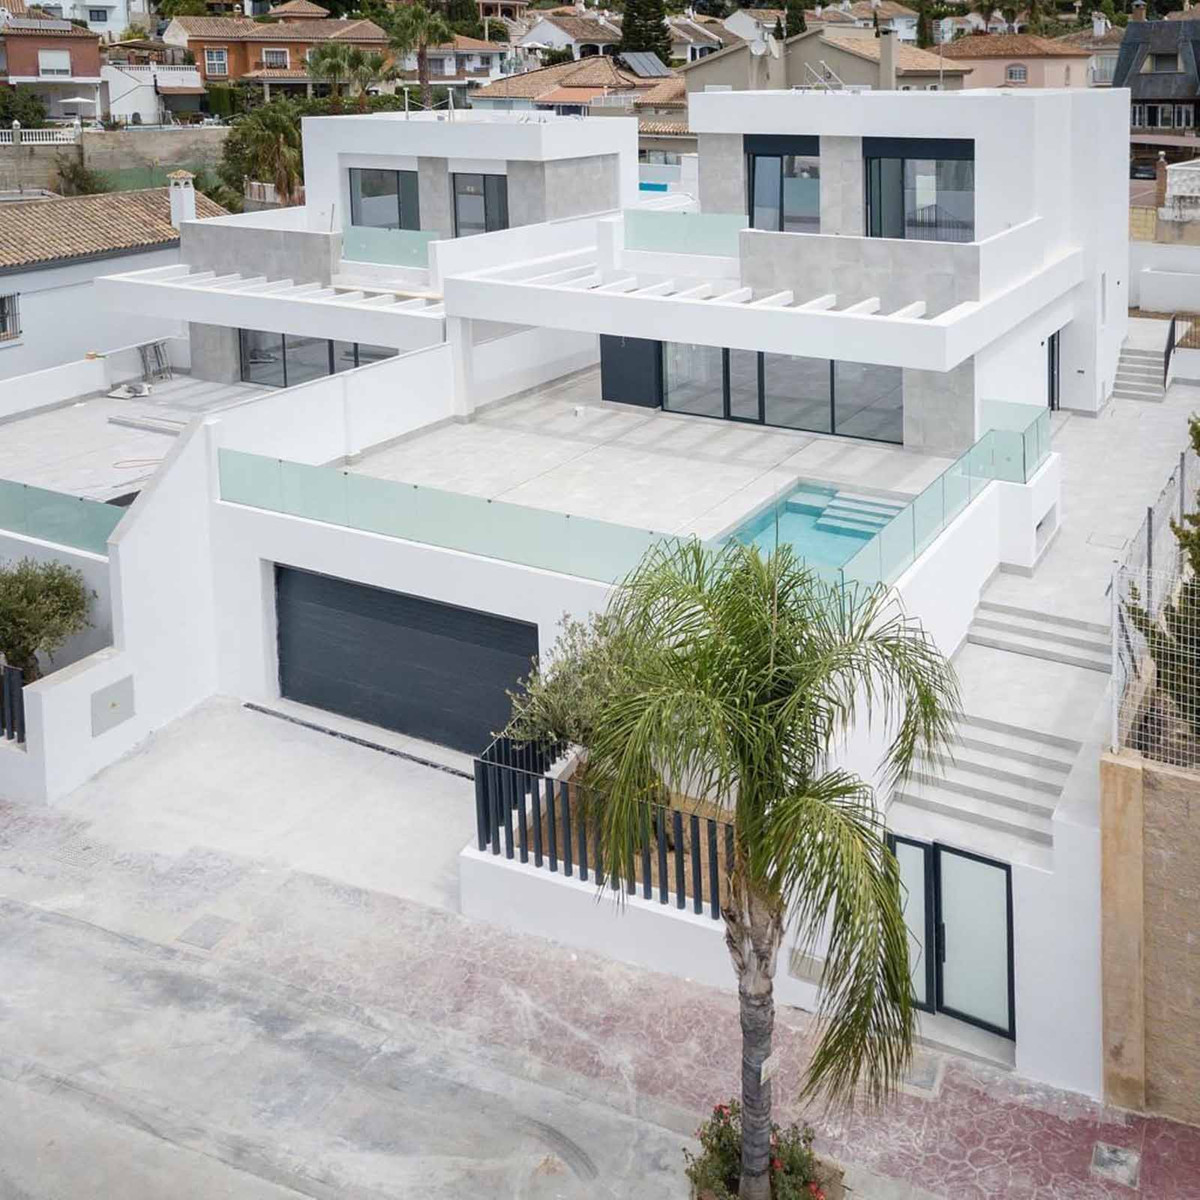 A new A+ certified luxury villa with views of the mountains in La Sierrezuela, Mijas, Malaga. The vi,Spain